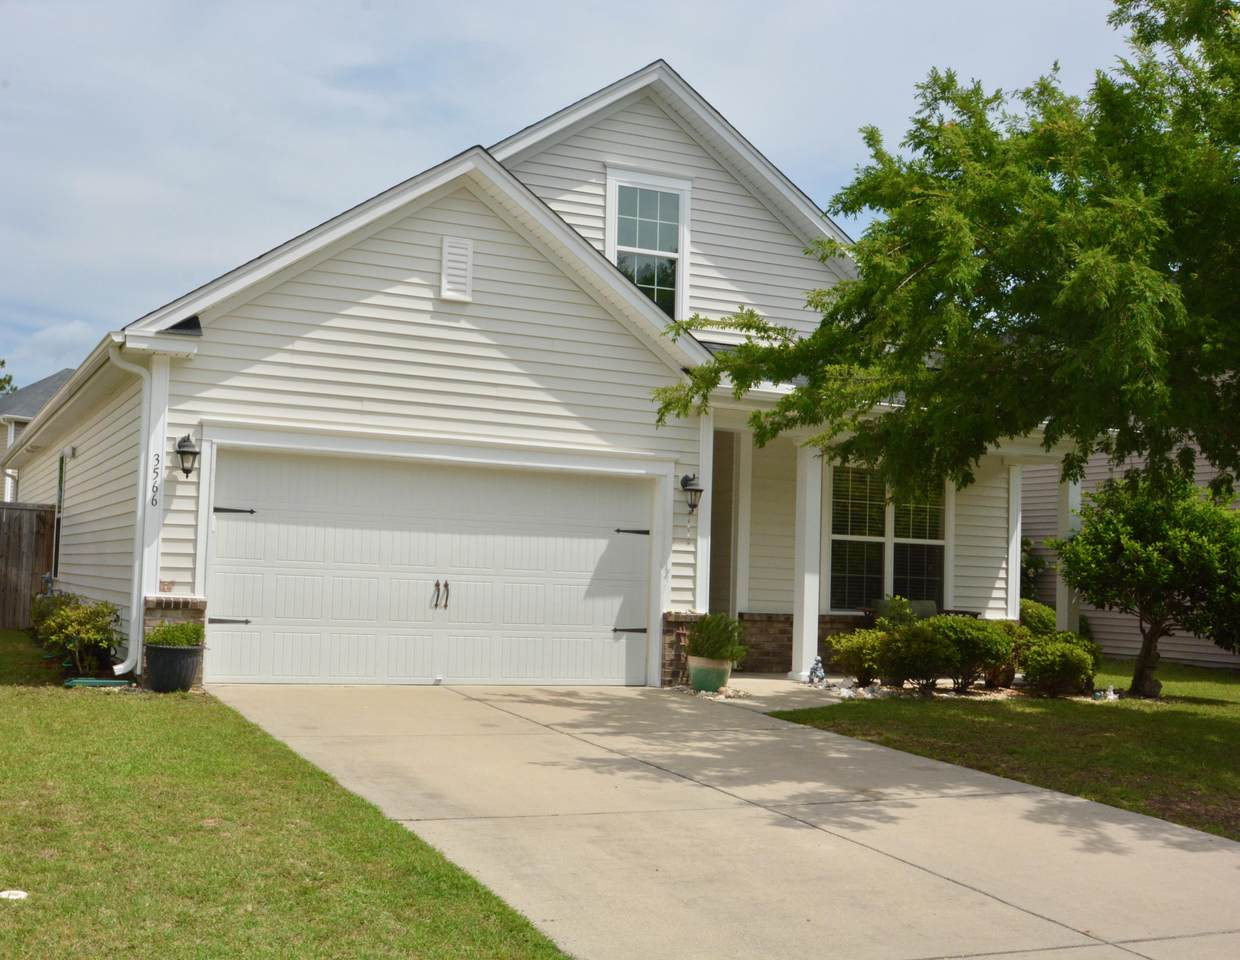 3566 Franklin Tower Drive - Photo 1